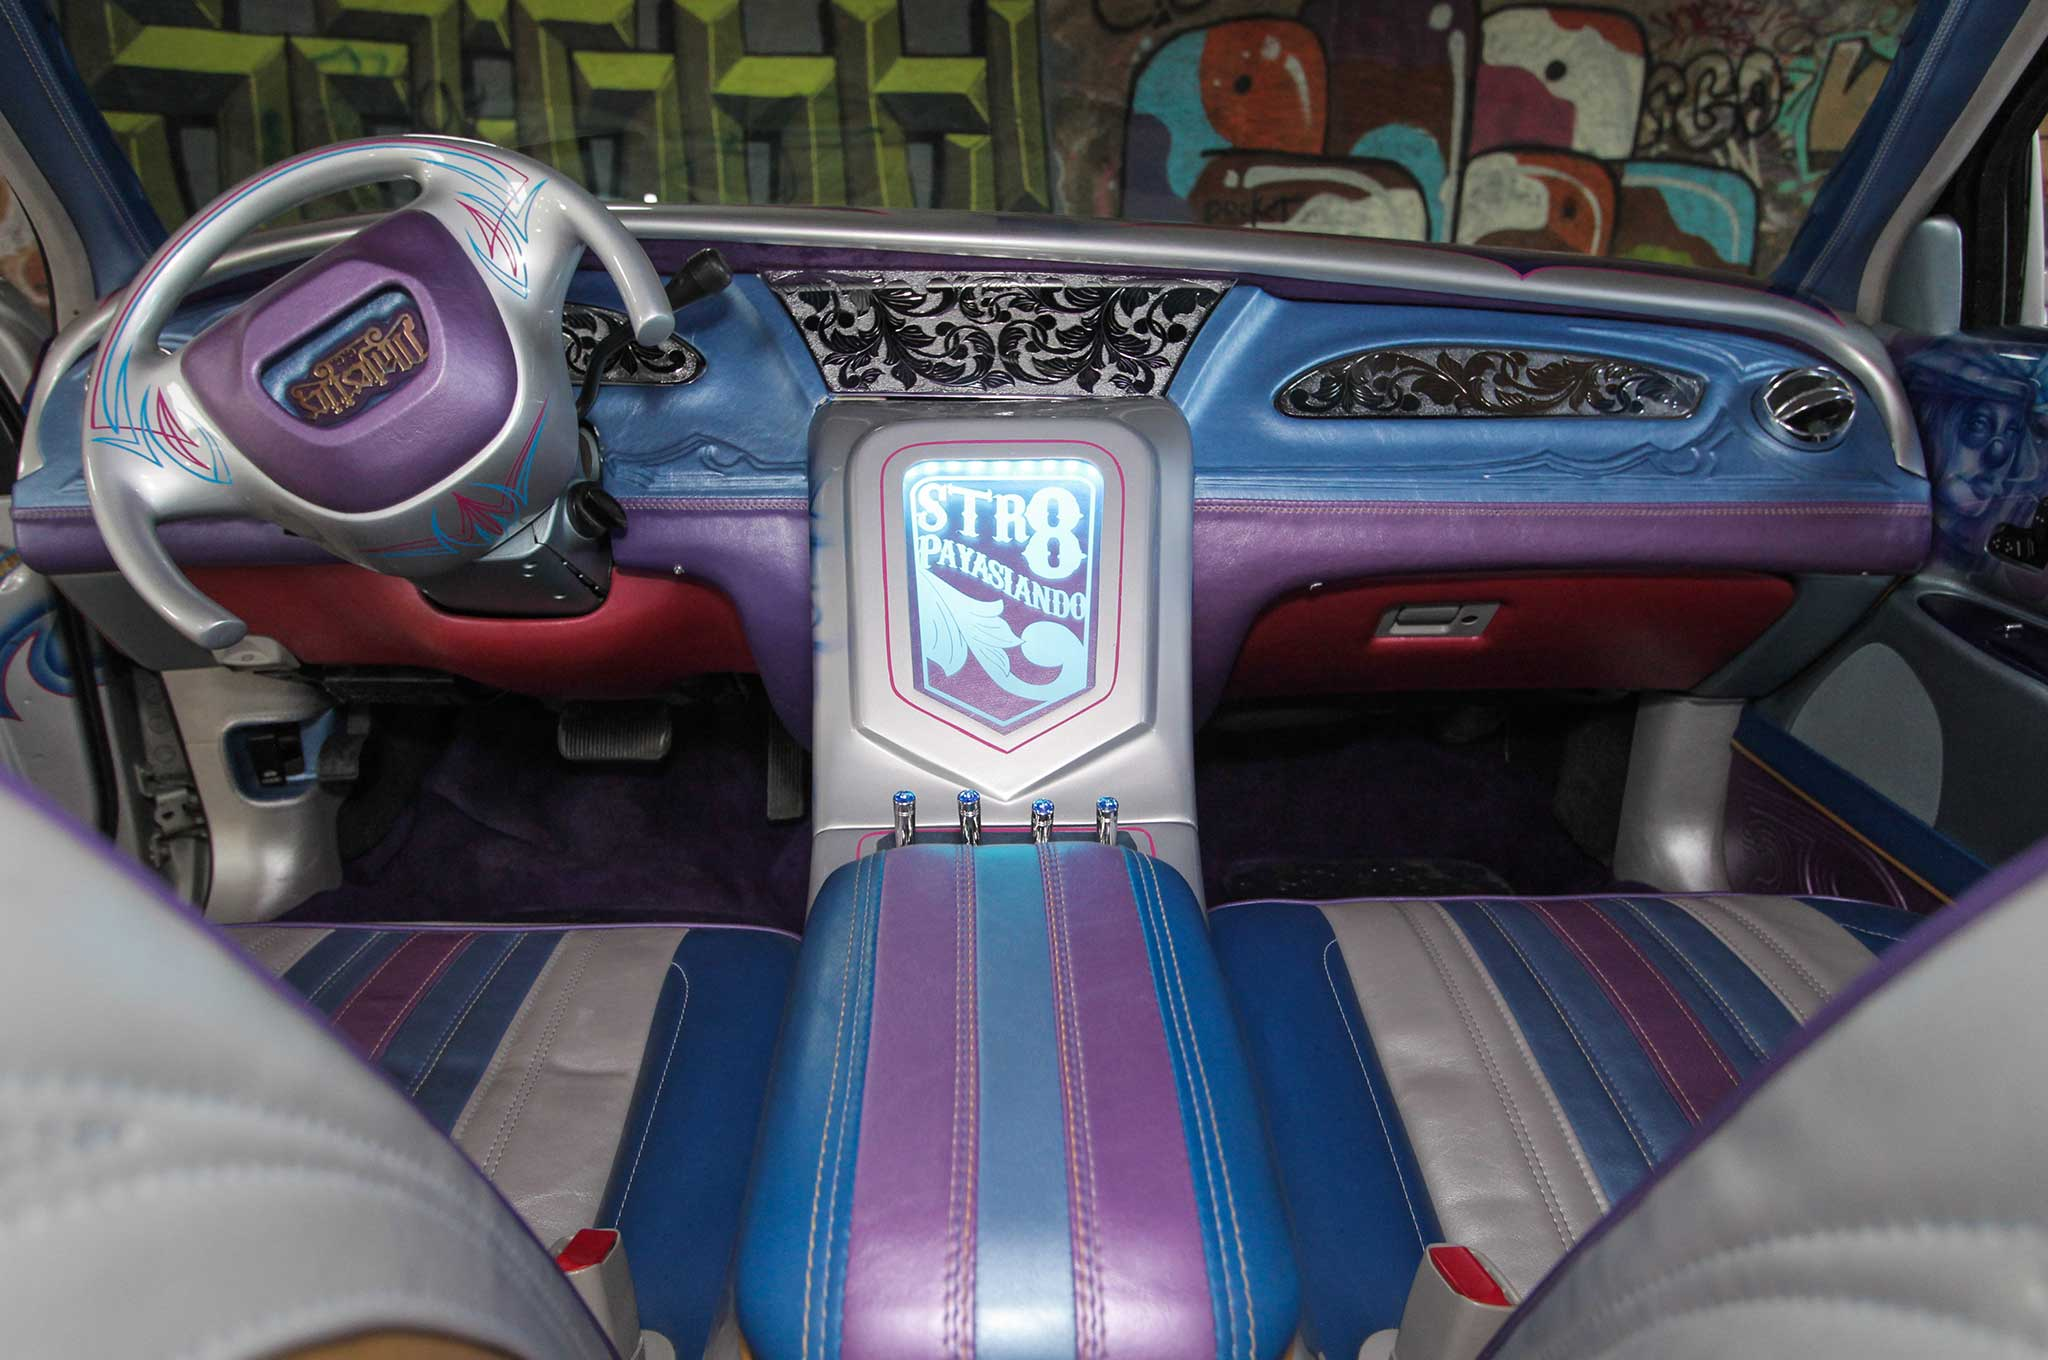 018 1999 Lincoln Town Car Interior Lowrider